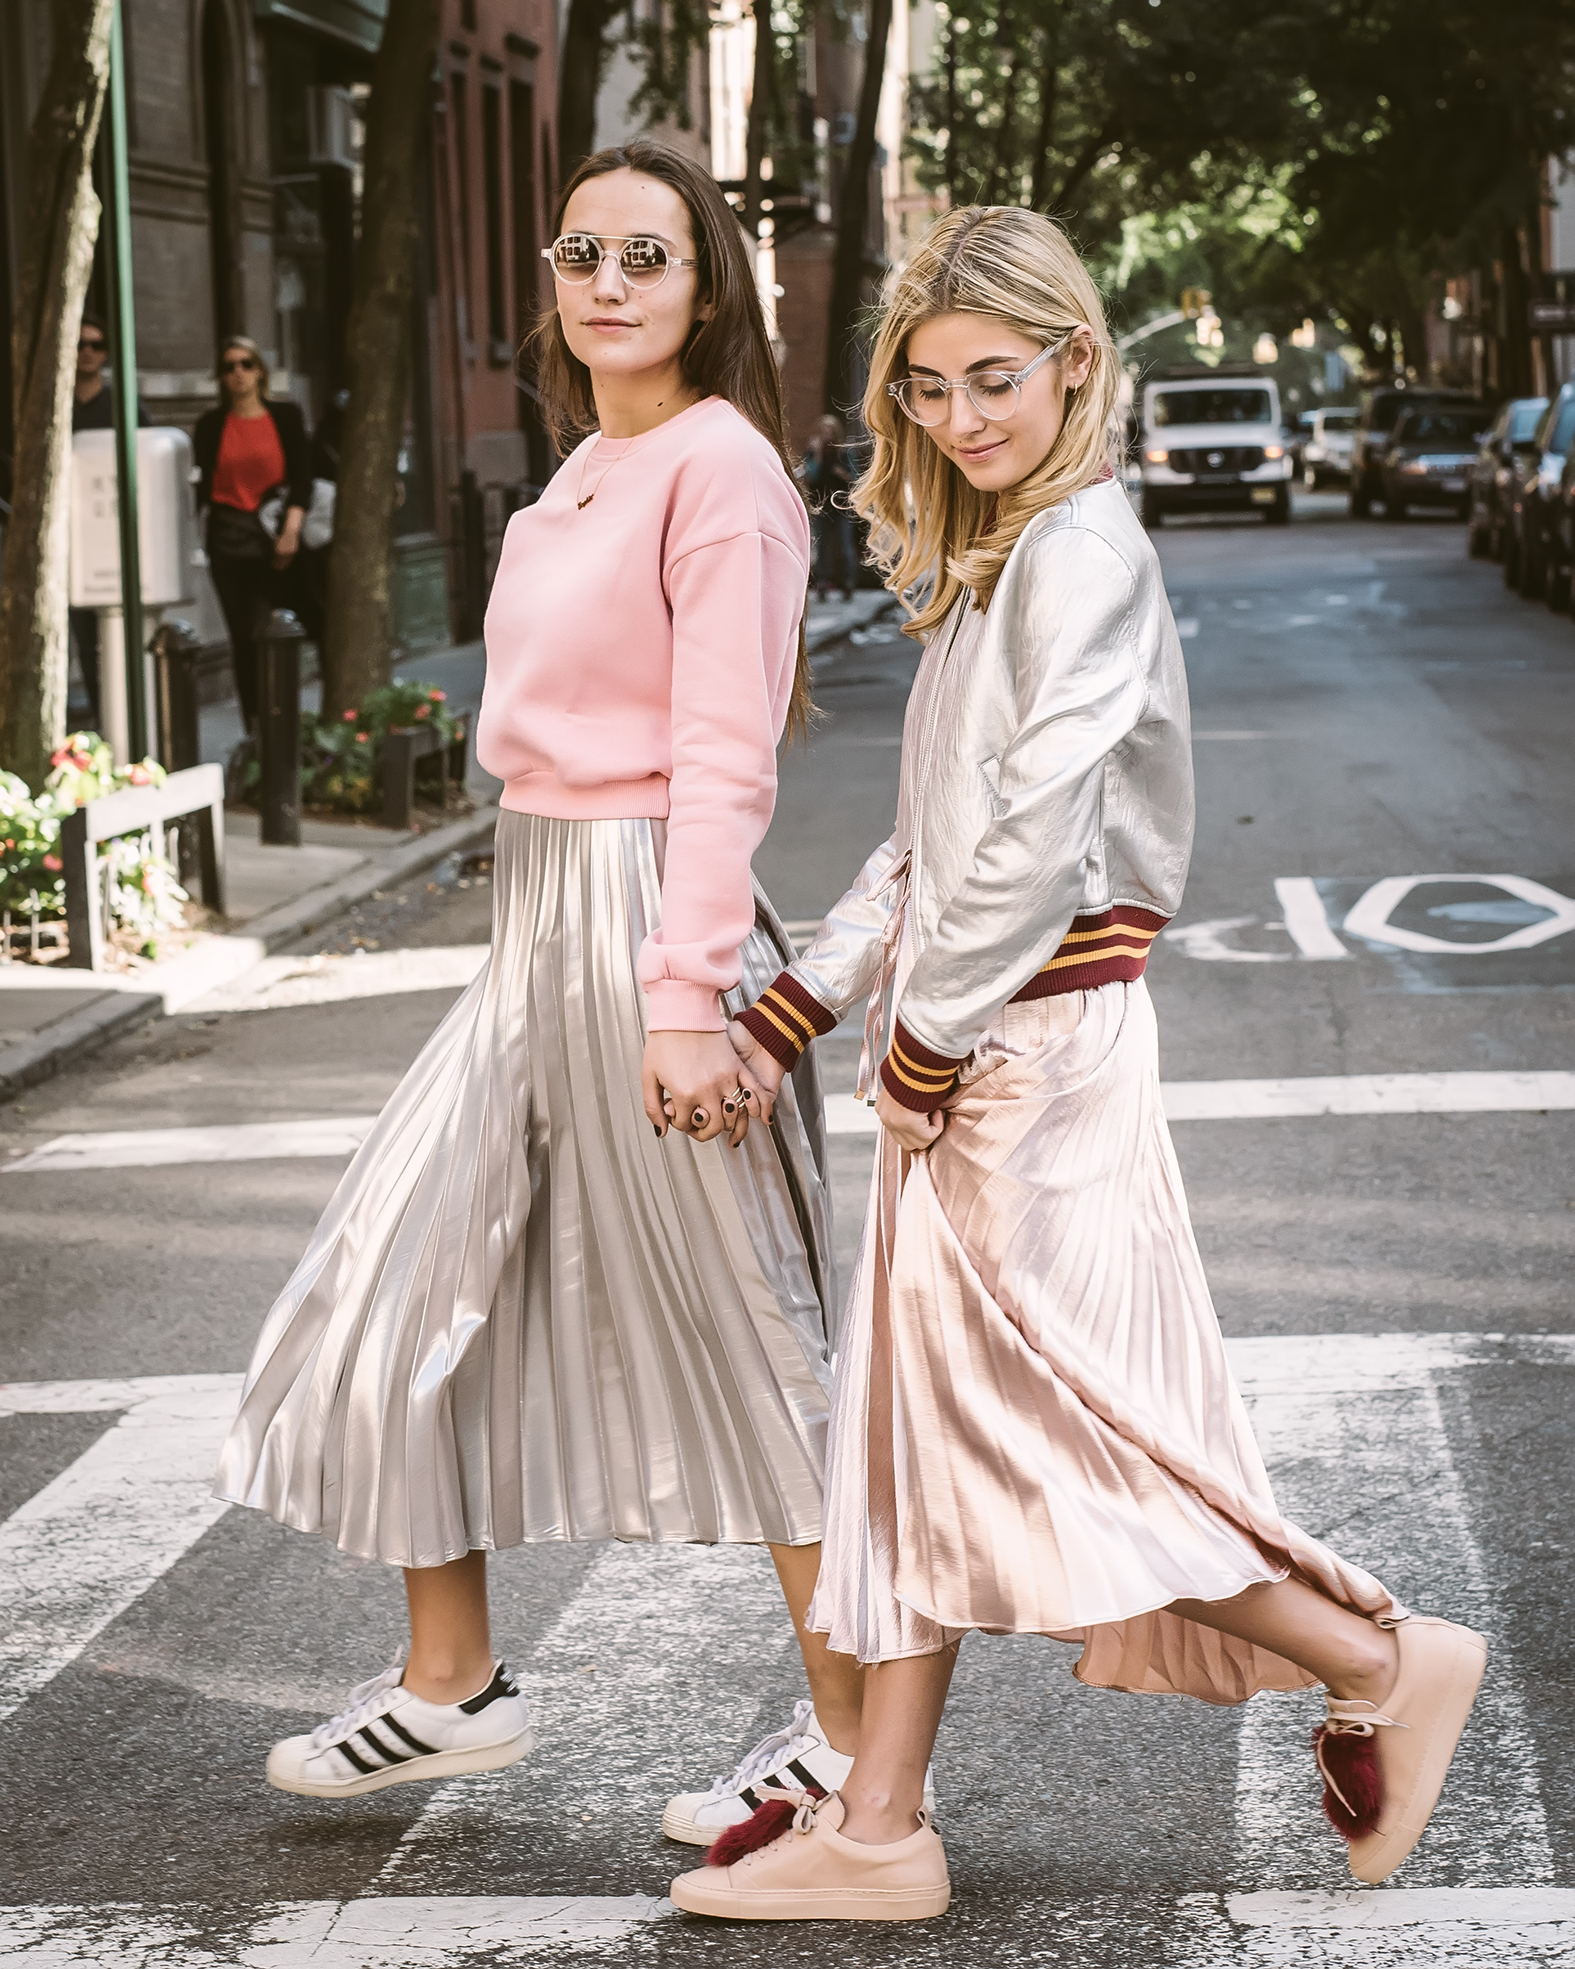 SOPHIE AND CHARLOTTE BICKLEY SISTER FASHION BLOGGERS YIN 2MY YANG PLEATED SKIRTS